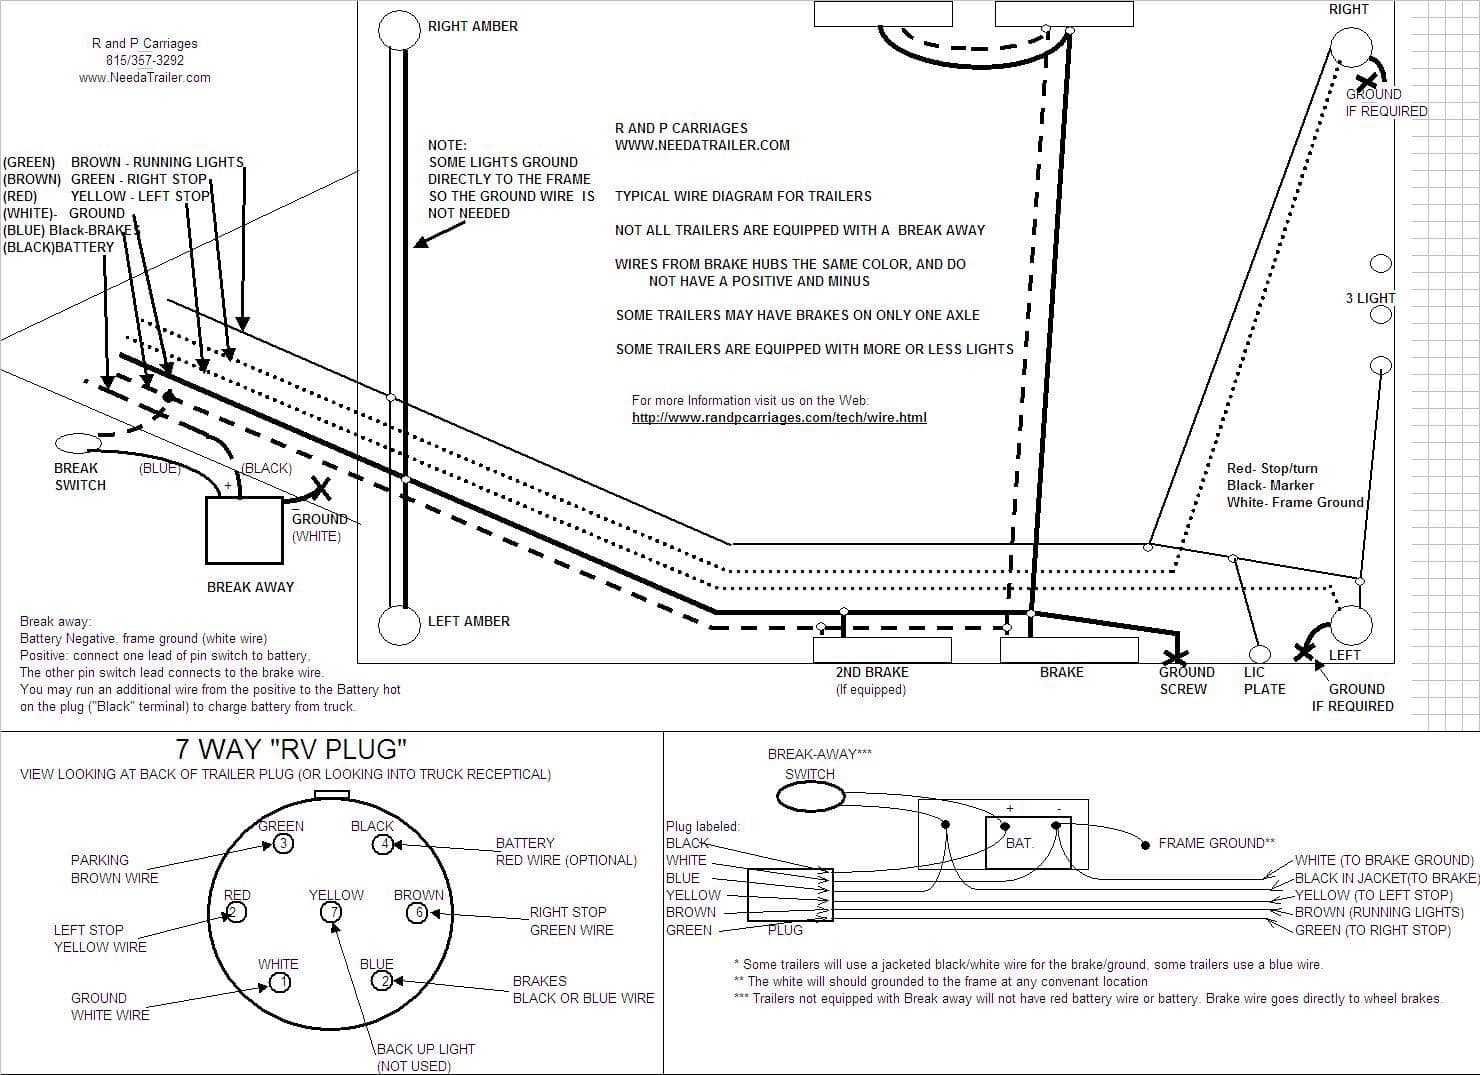 Wiring Trailer Clearance Lights 7 Way Plug Information R And P Carriages Cargo Utility Dump Diagram